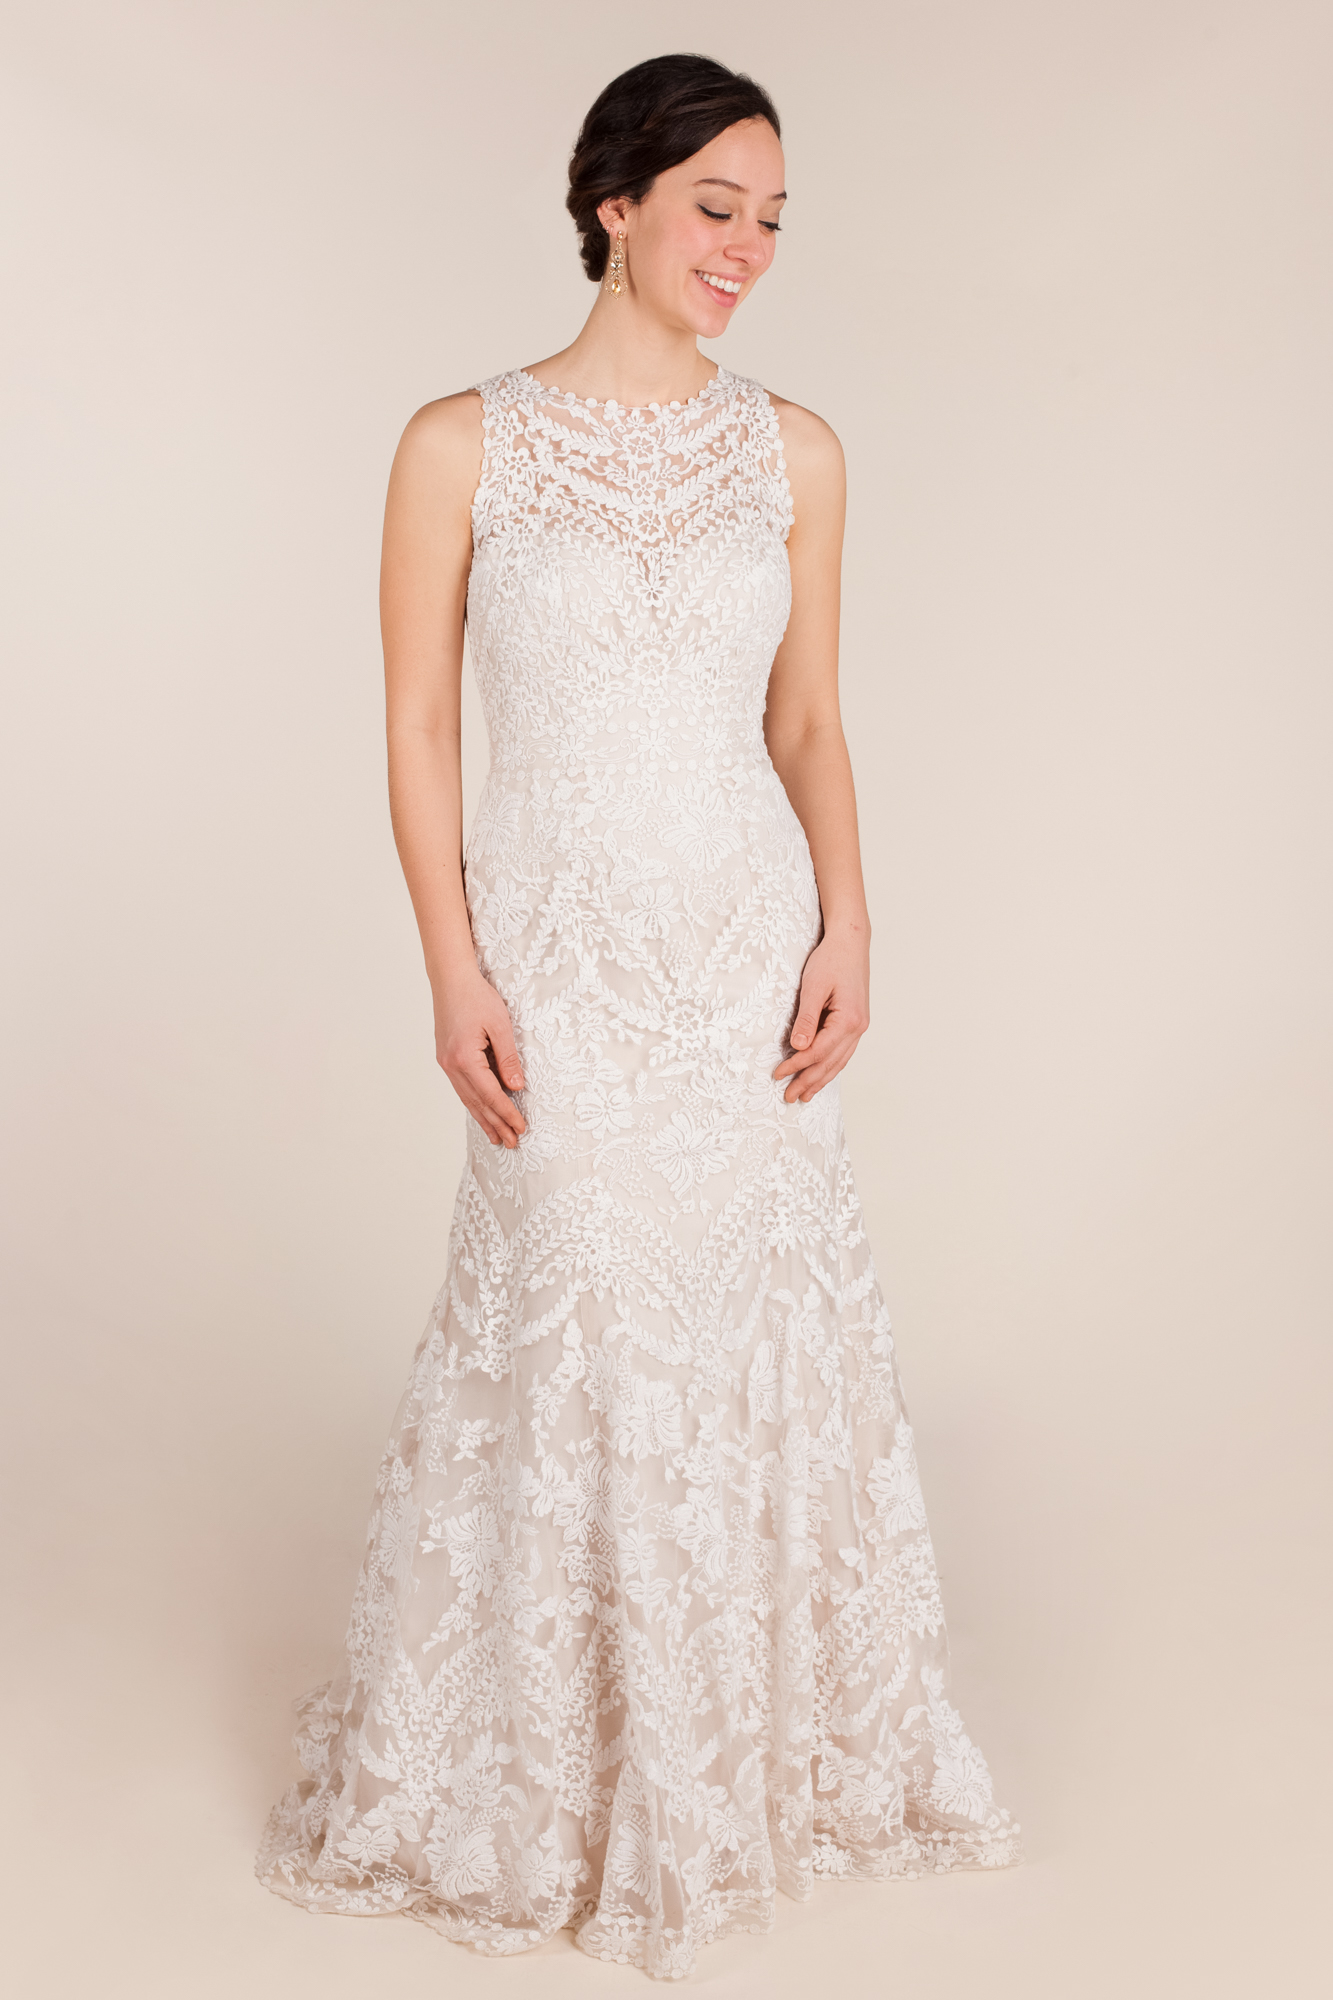 Bhldn size 12 - $1000 - (44% OFF)